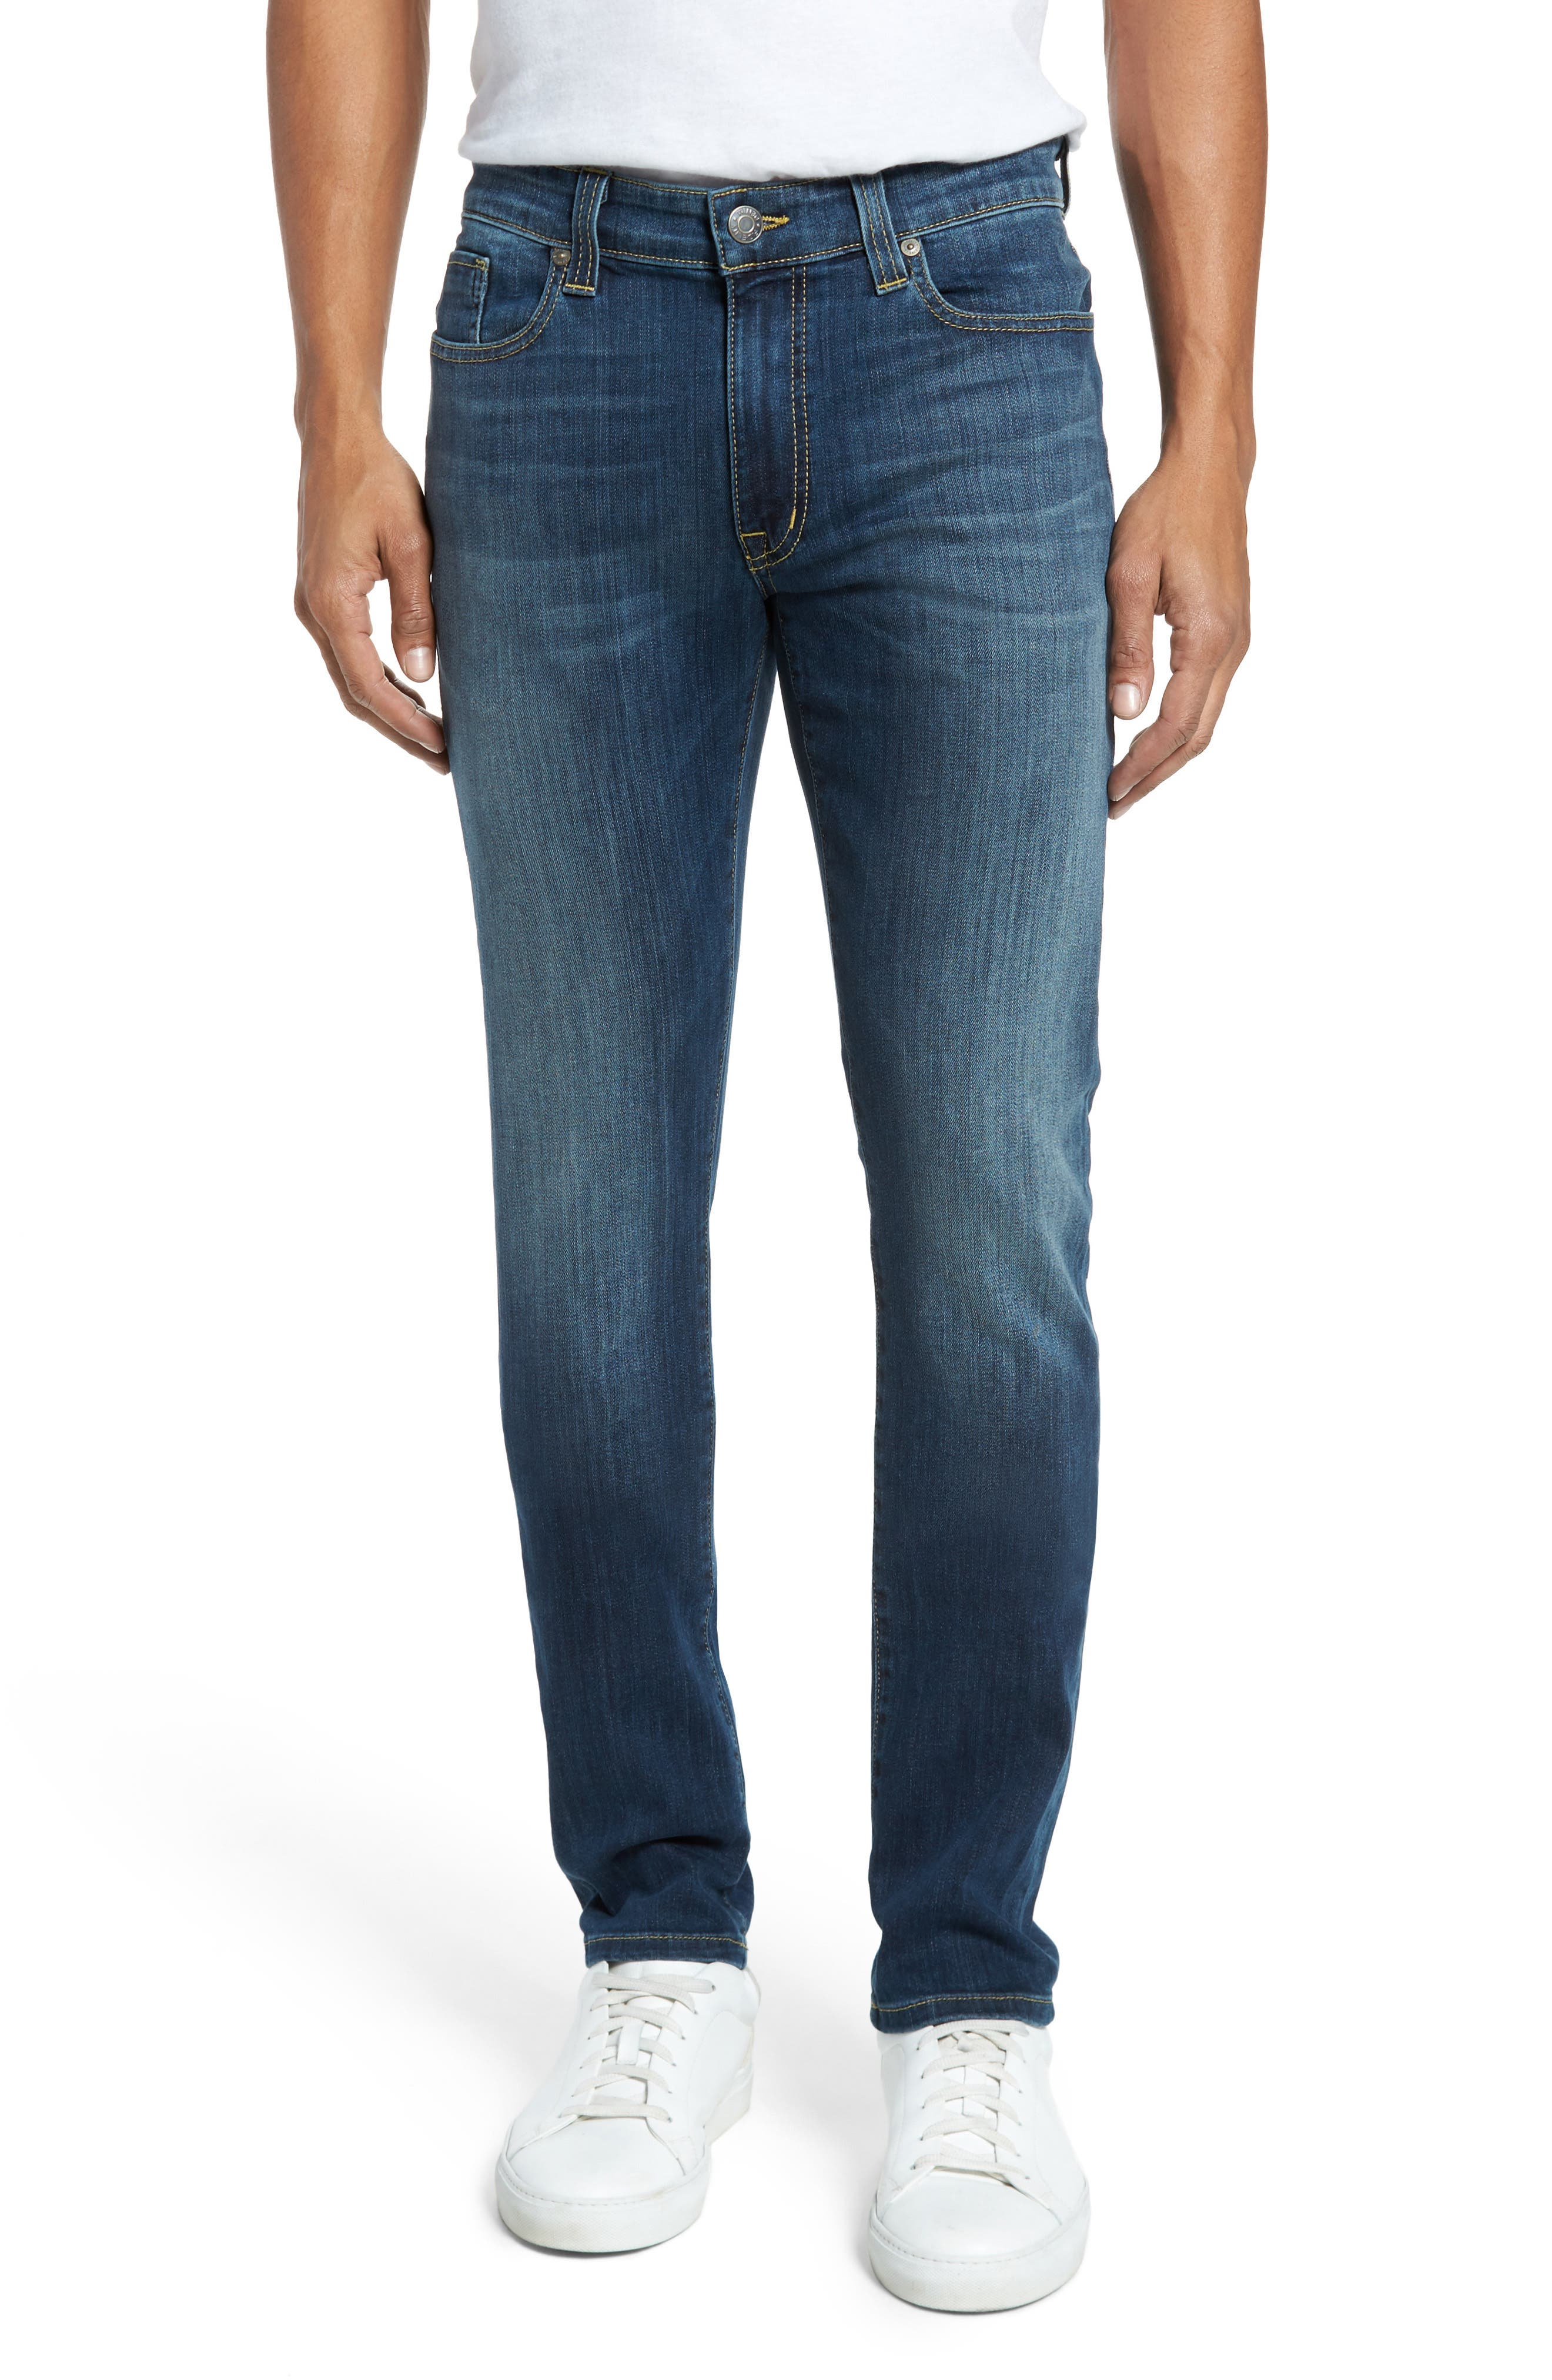 Torino Slim Fit Jeans,                         Main,                         color, Providence